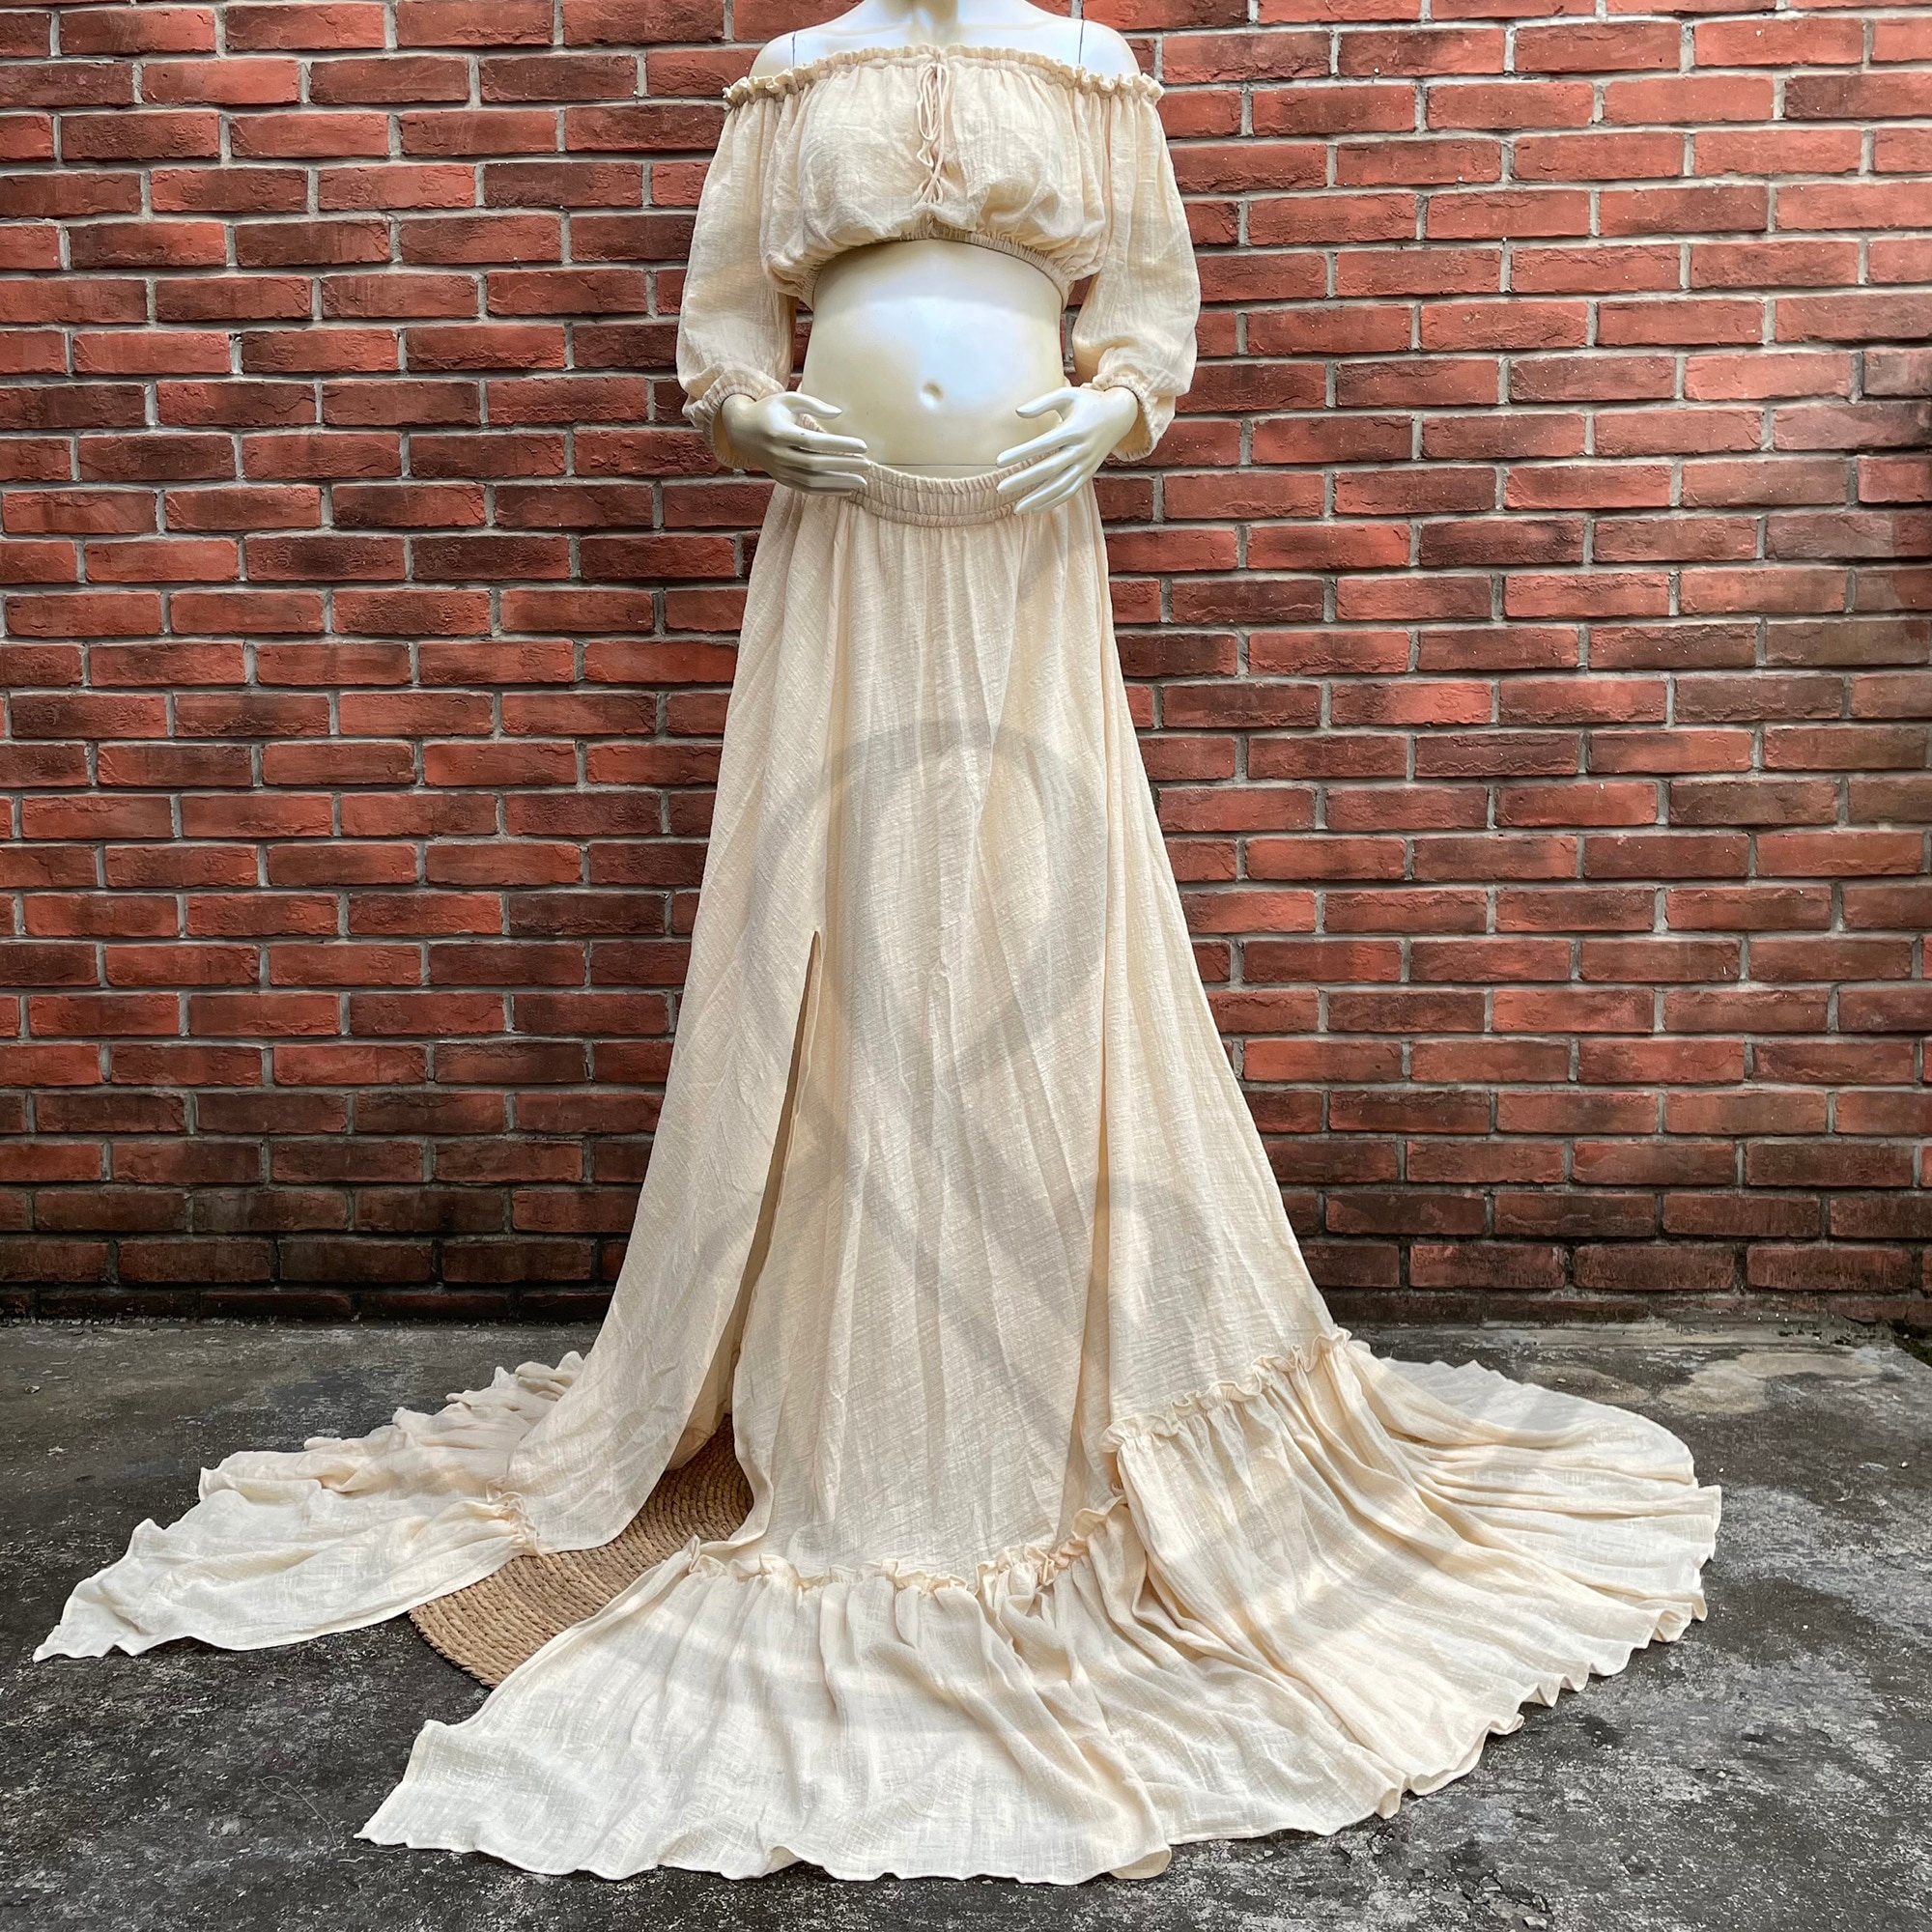 Don&Judy Boho Style Retro Top and Skirt Set Maternity Or Non Maternity Dress for Photoshoot Photography Props Party Gown 2021 enlarge